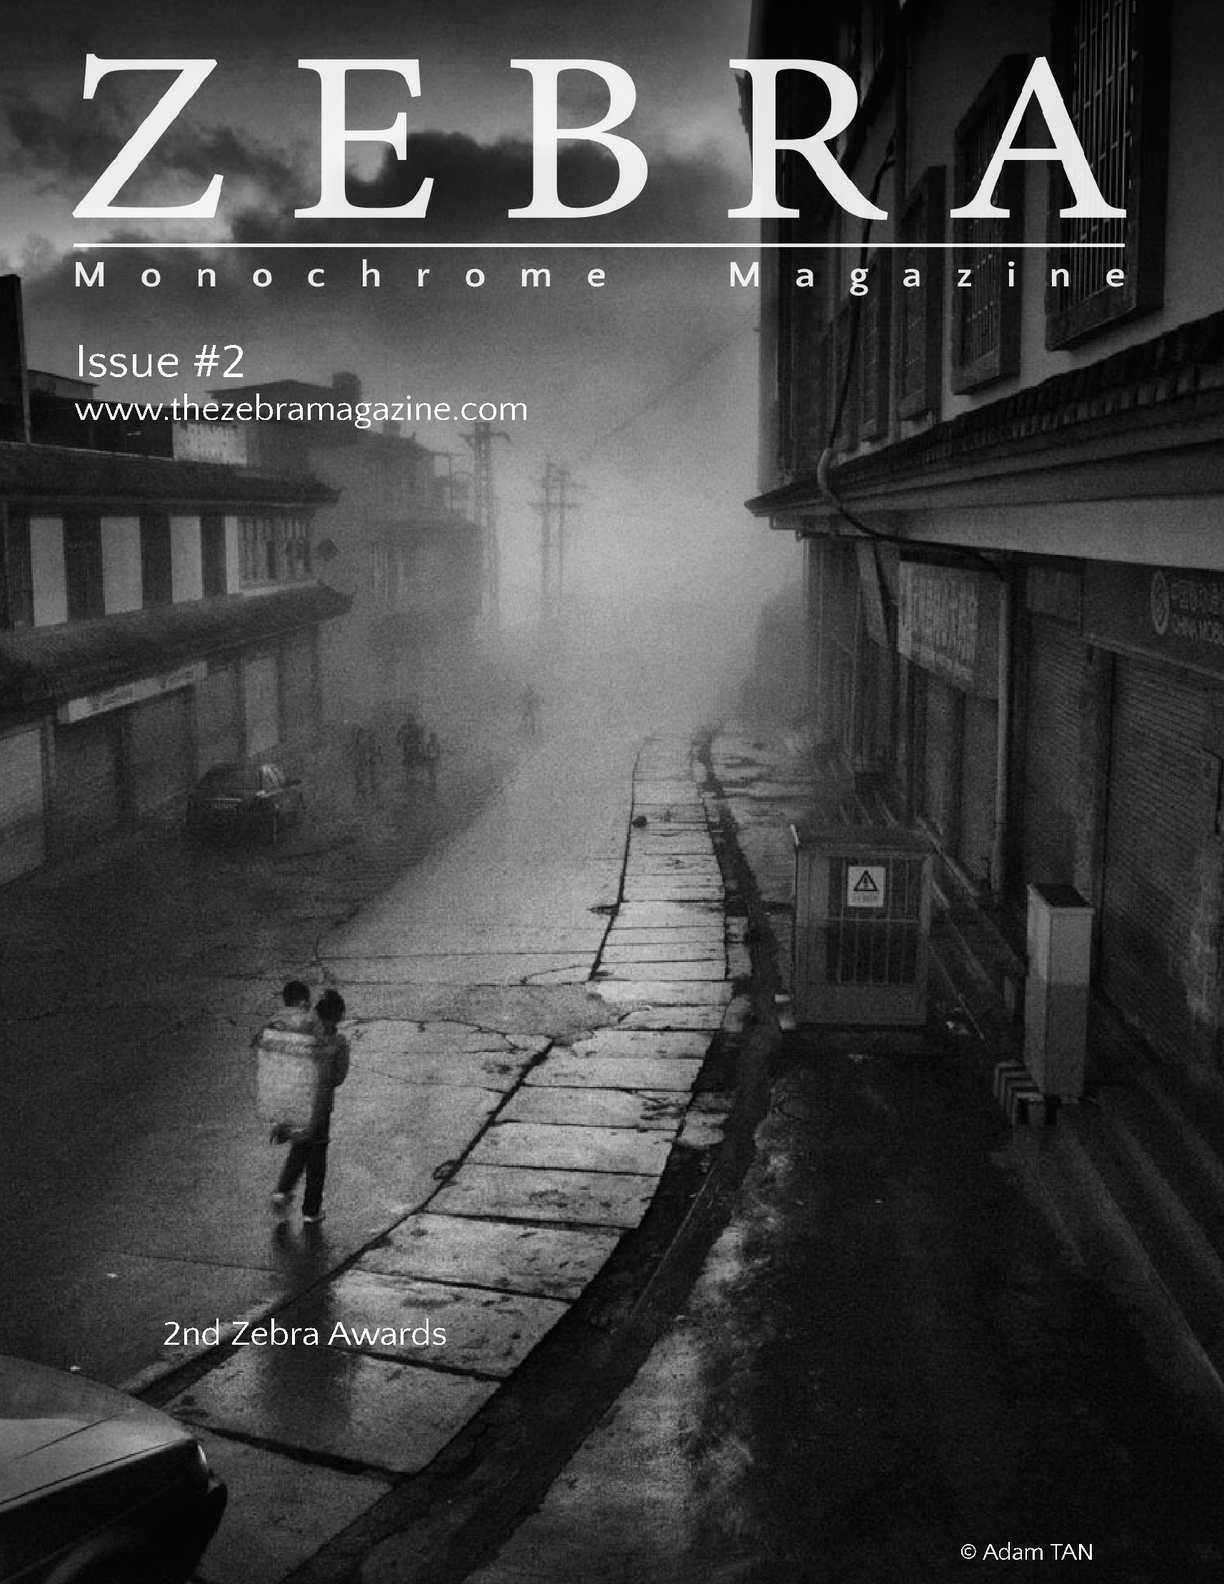 Zebra Magazine Issue #2a